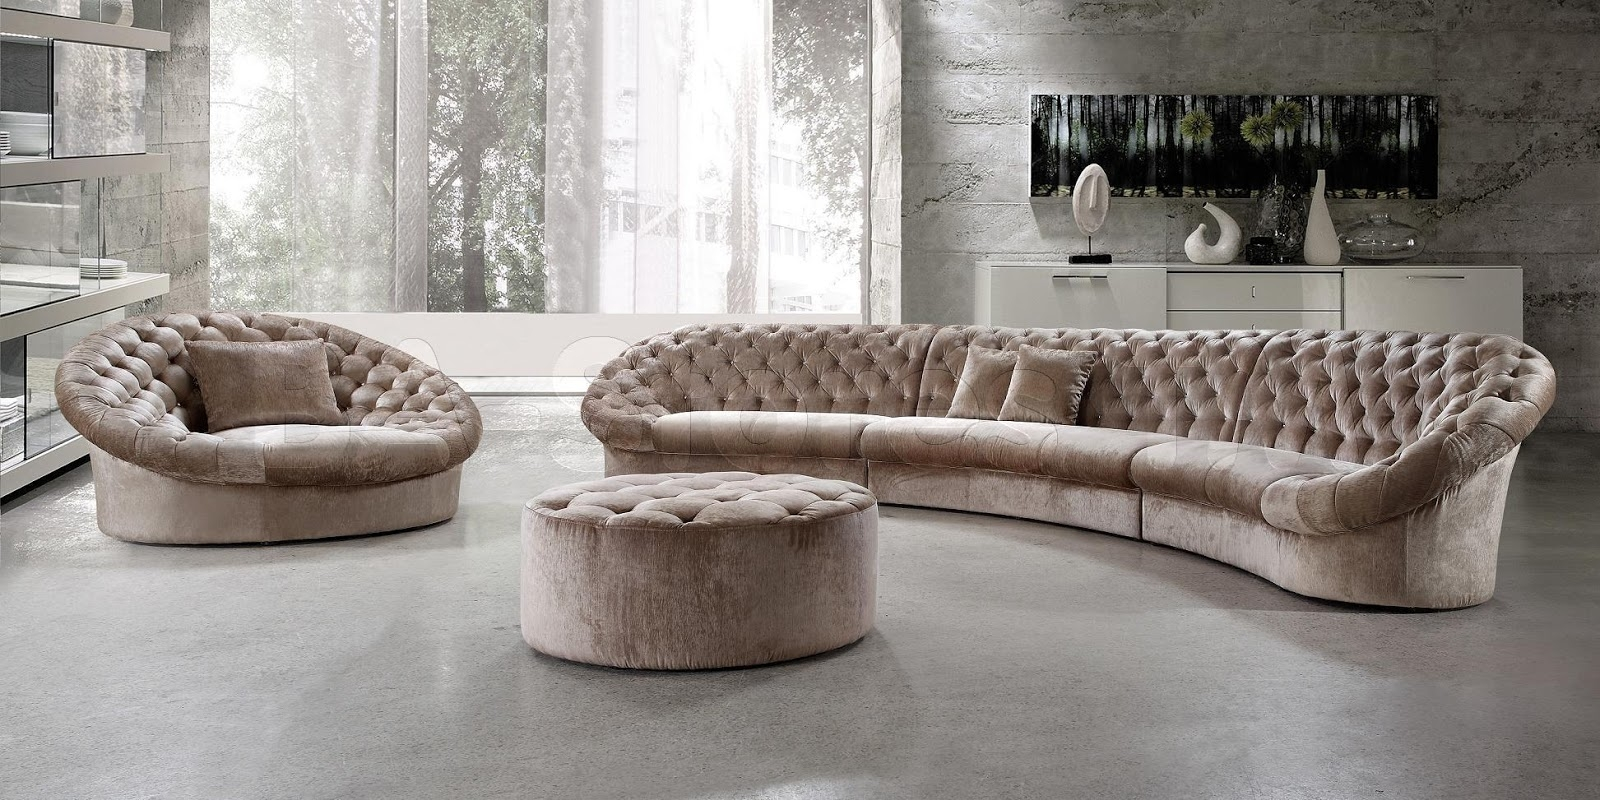 Semi Circular Sofas Sectionals Cleanupflorida Intended For Extra Wide Sectional Sofas (#11 of 12)